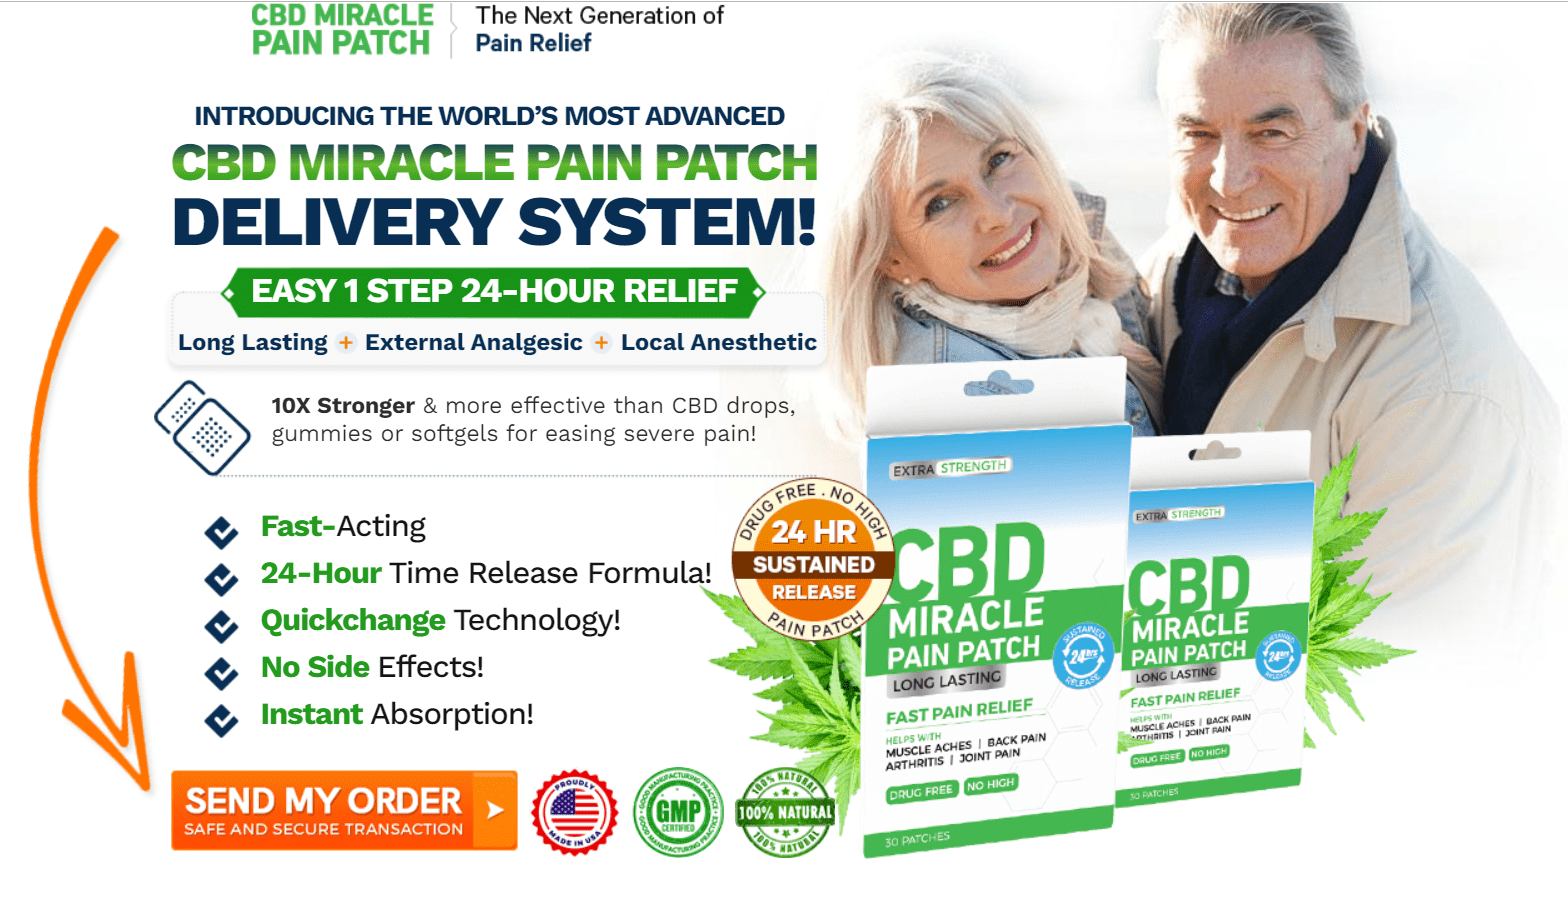 CBD Miracle Pain Patch order now